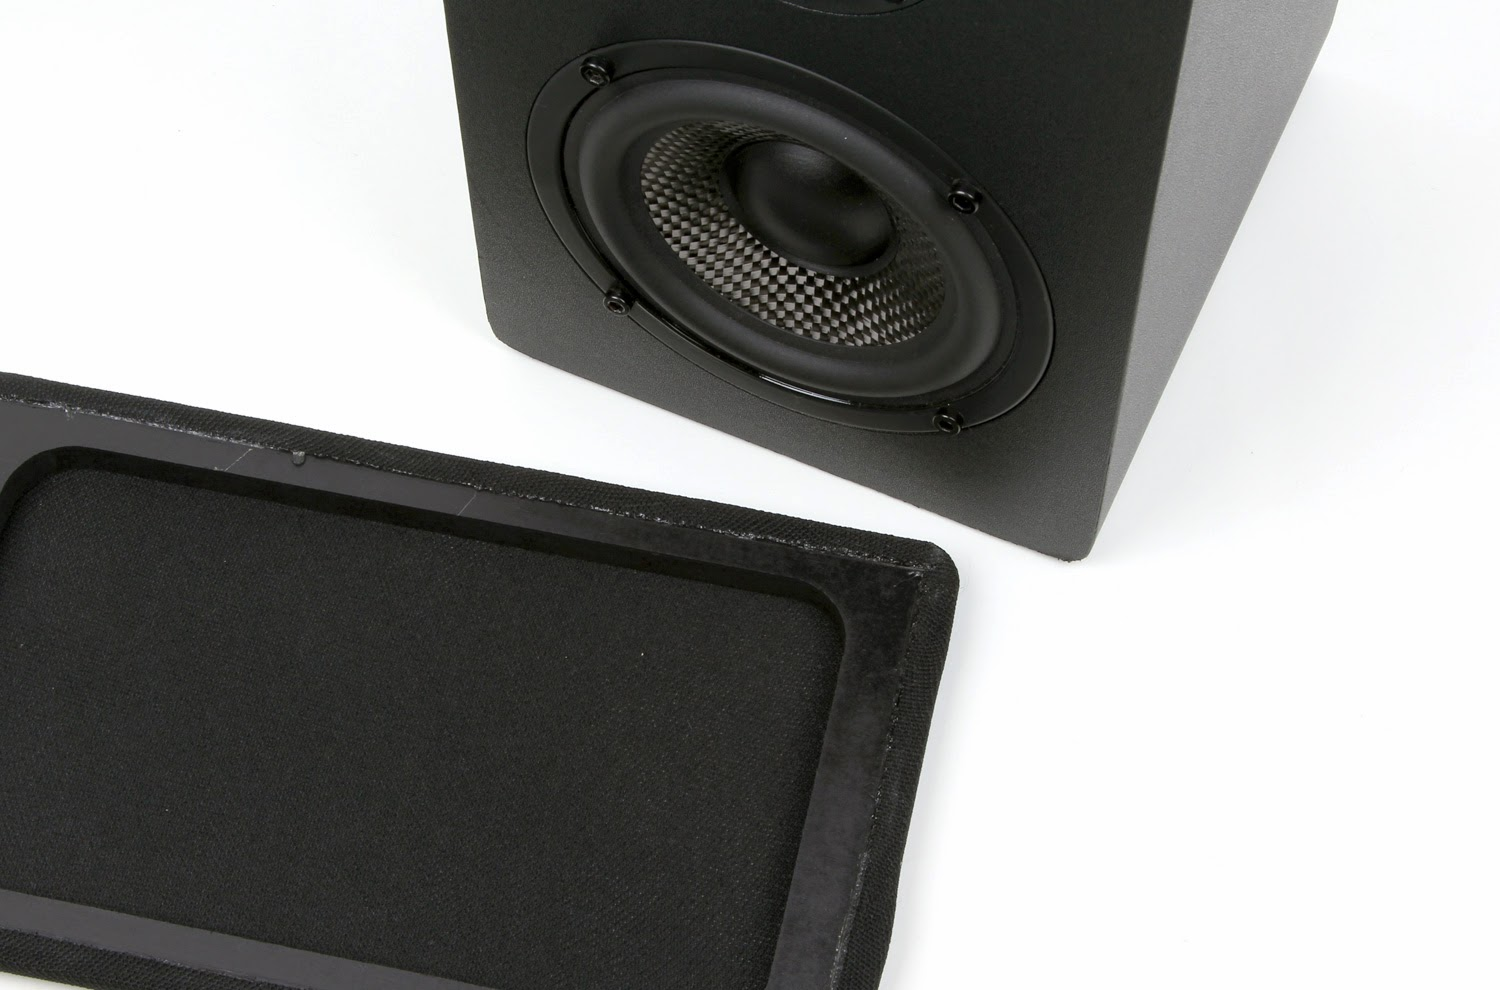 The Drivers Of MB42X Are Identical To Ones In MB42 Same 4 Carbon Fiber Cone Woofer And 075 Soft Dome Tweeter Mounted At Exact